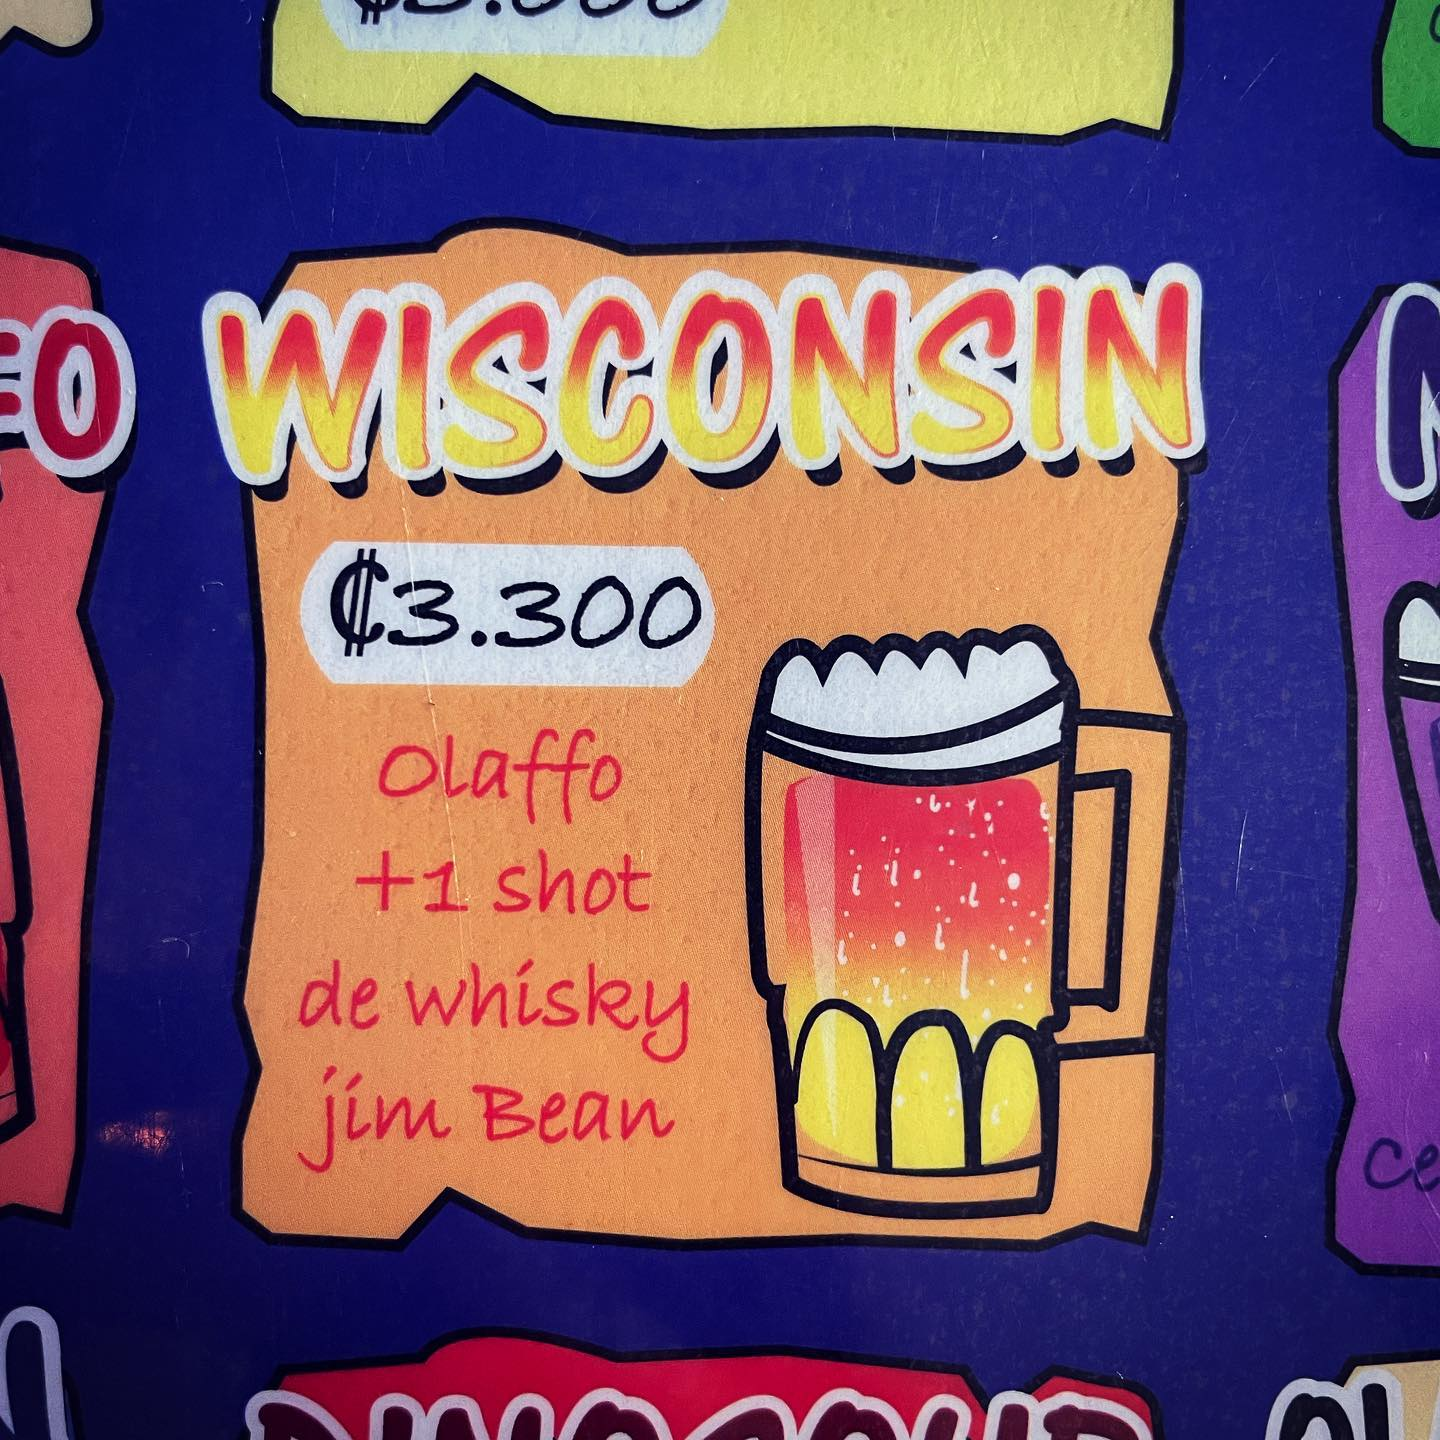 Everything I know about Wisconsin I learned from this drink menu